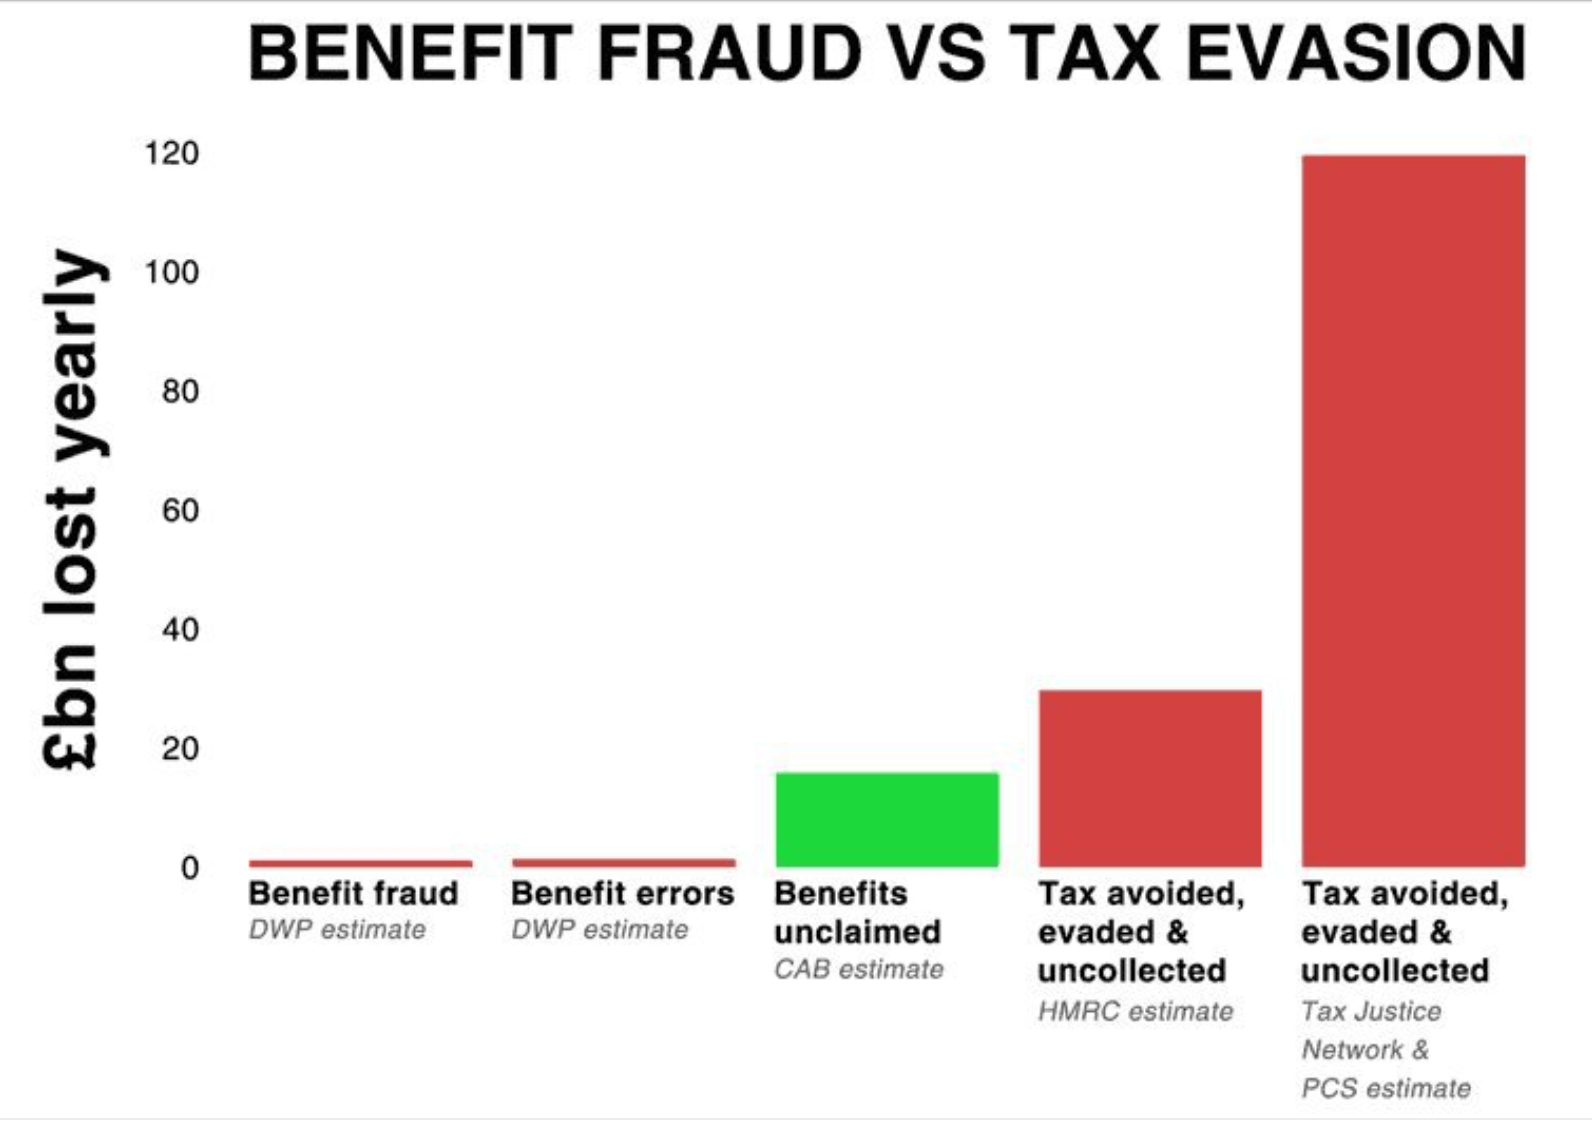 Hmrc And Dwp Lose More Money By Their Own Errors Than By Fraud